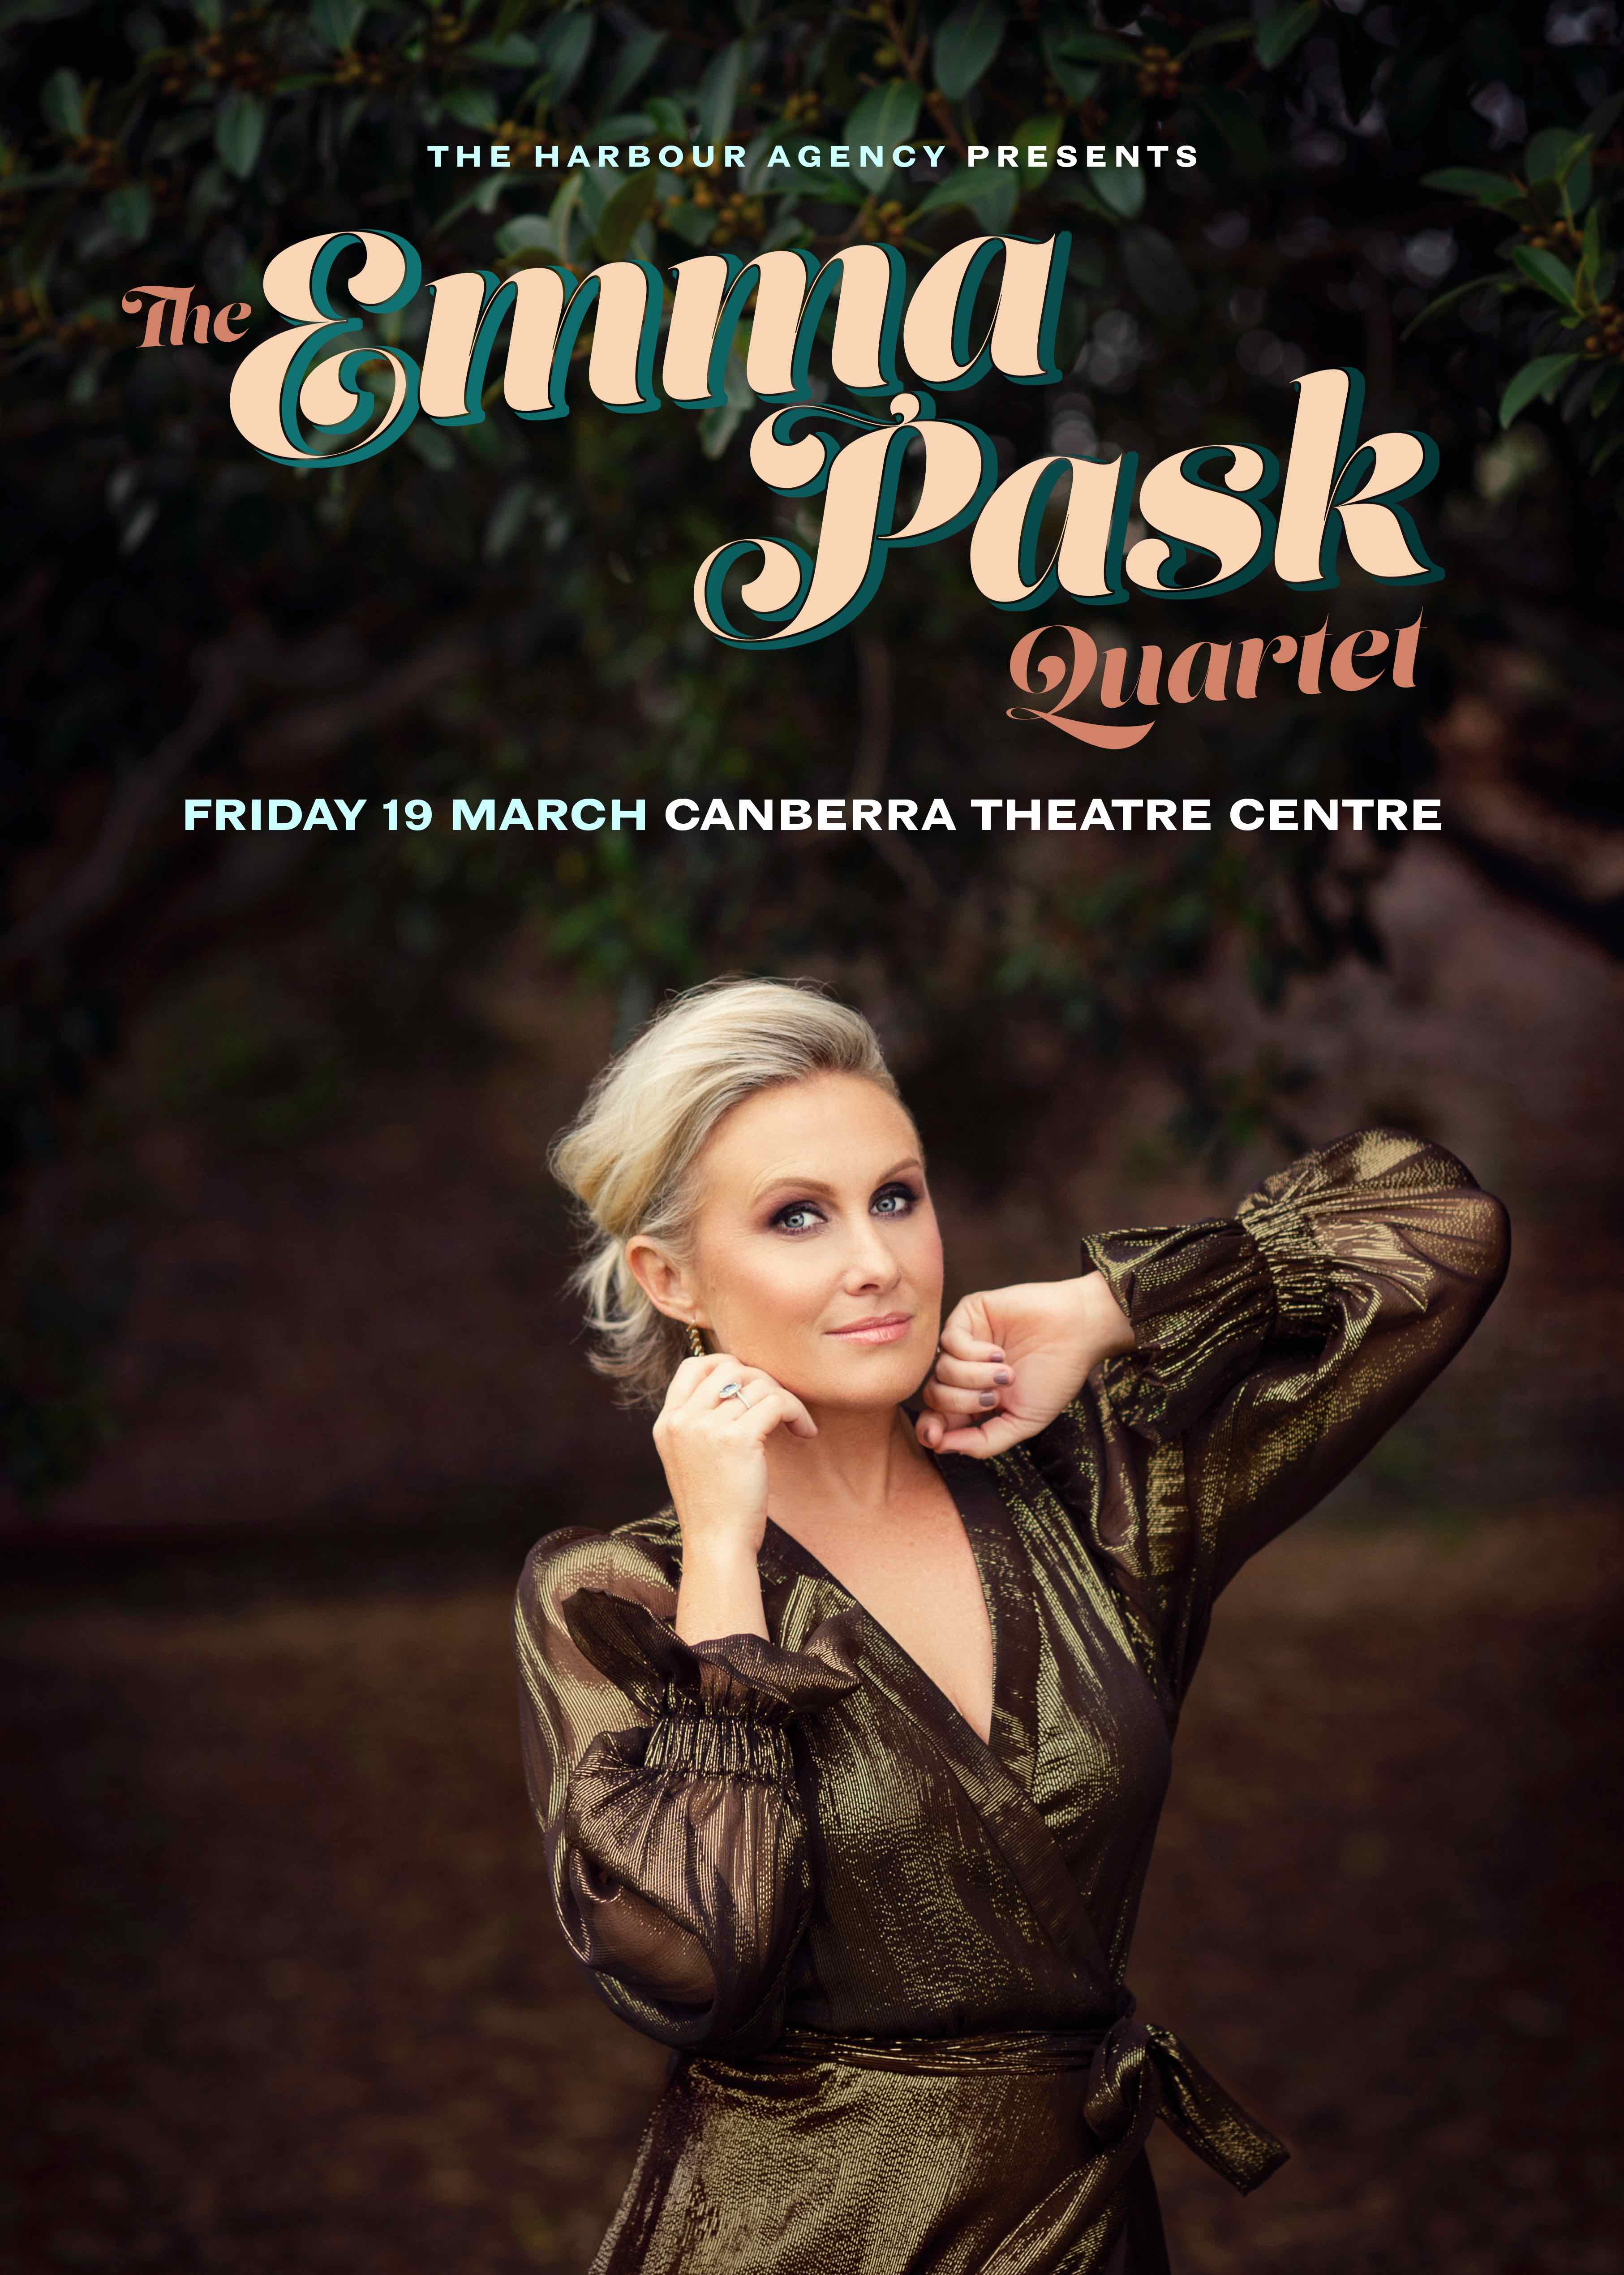 emmapask-a3-canberra-playhouse